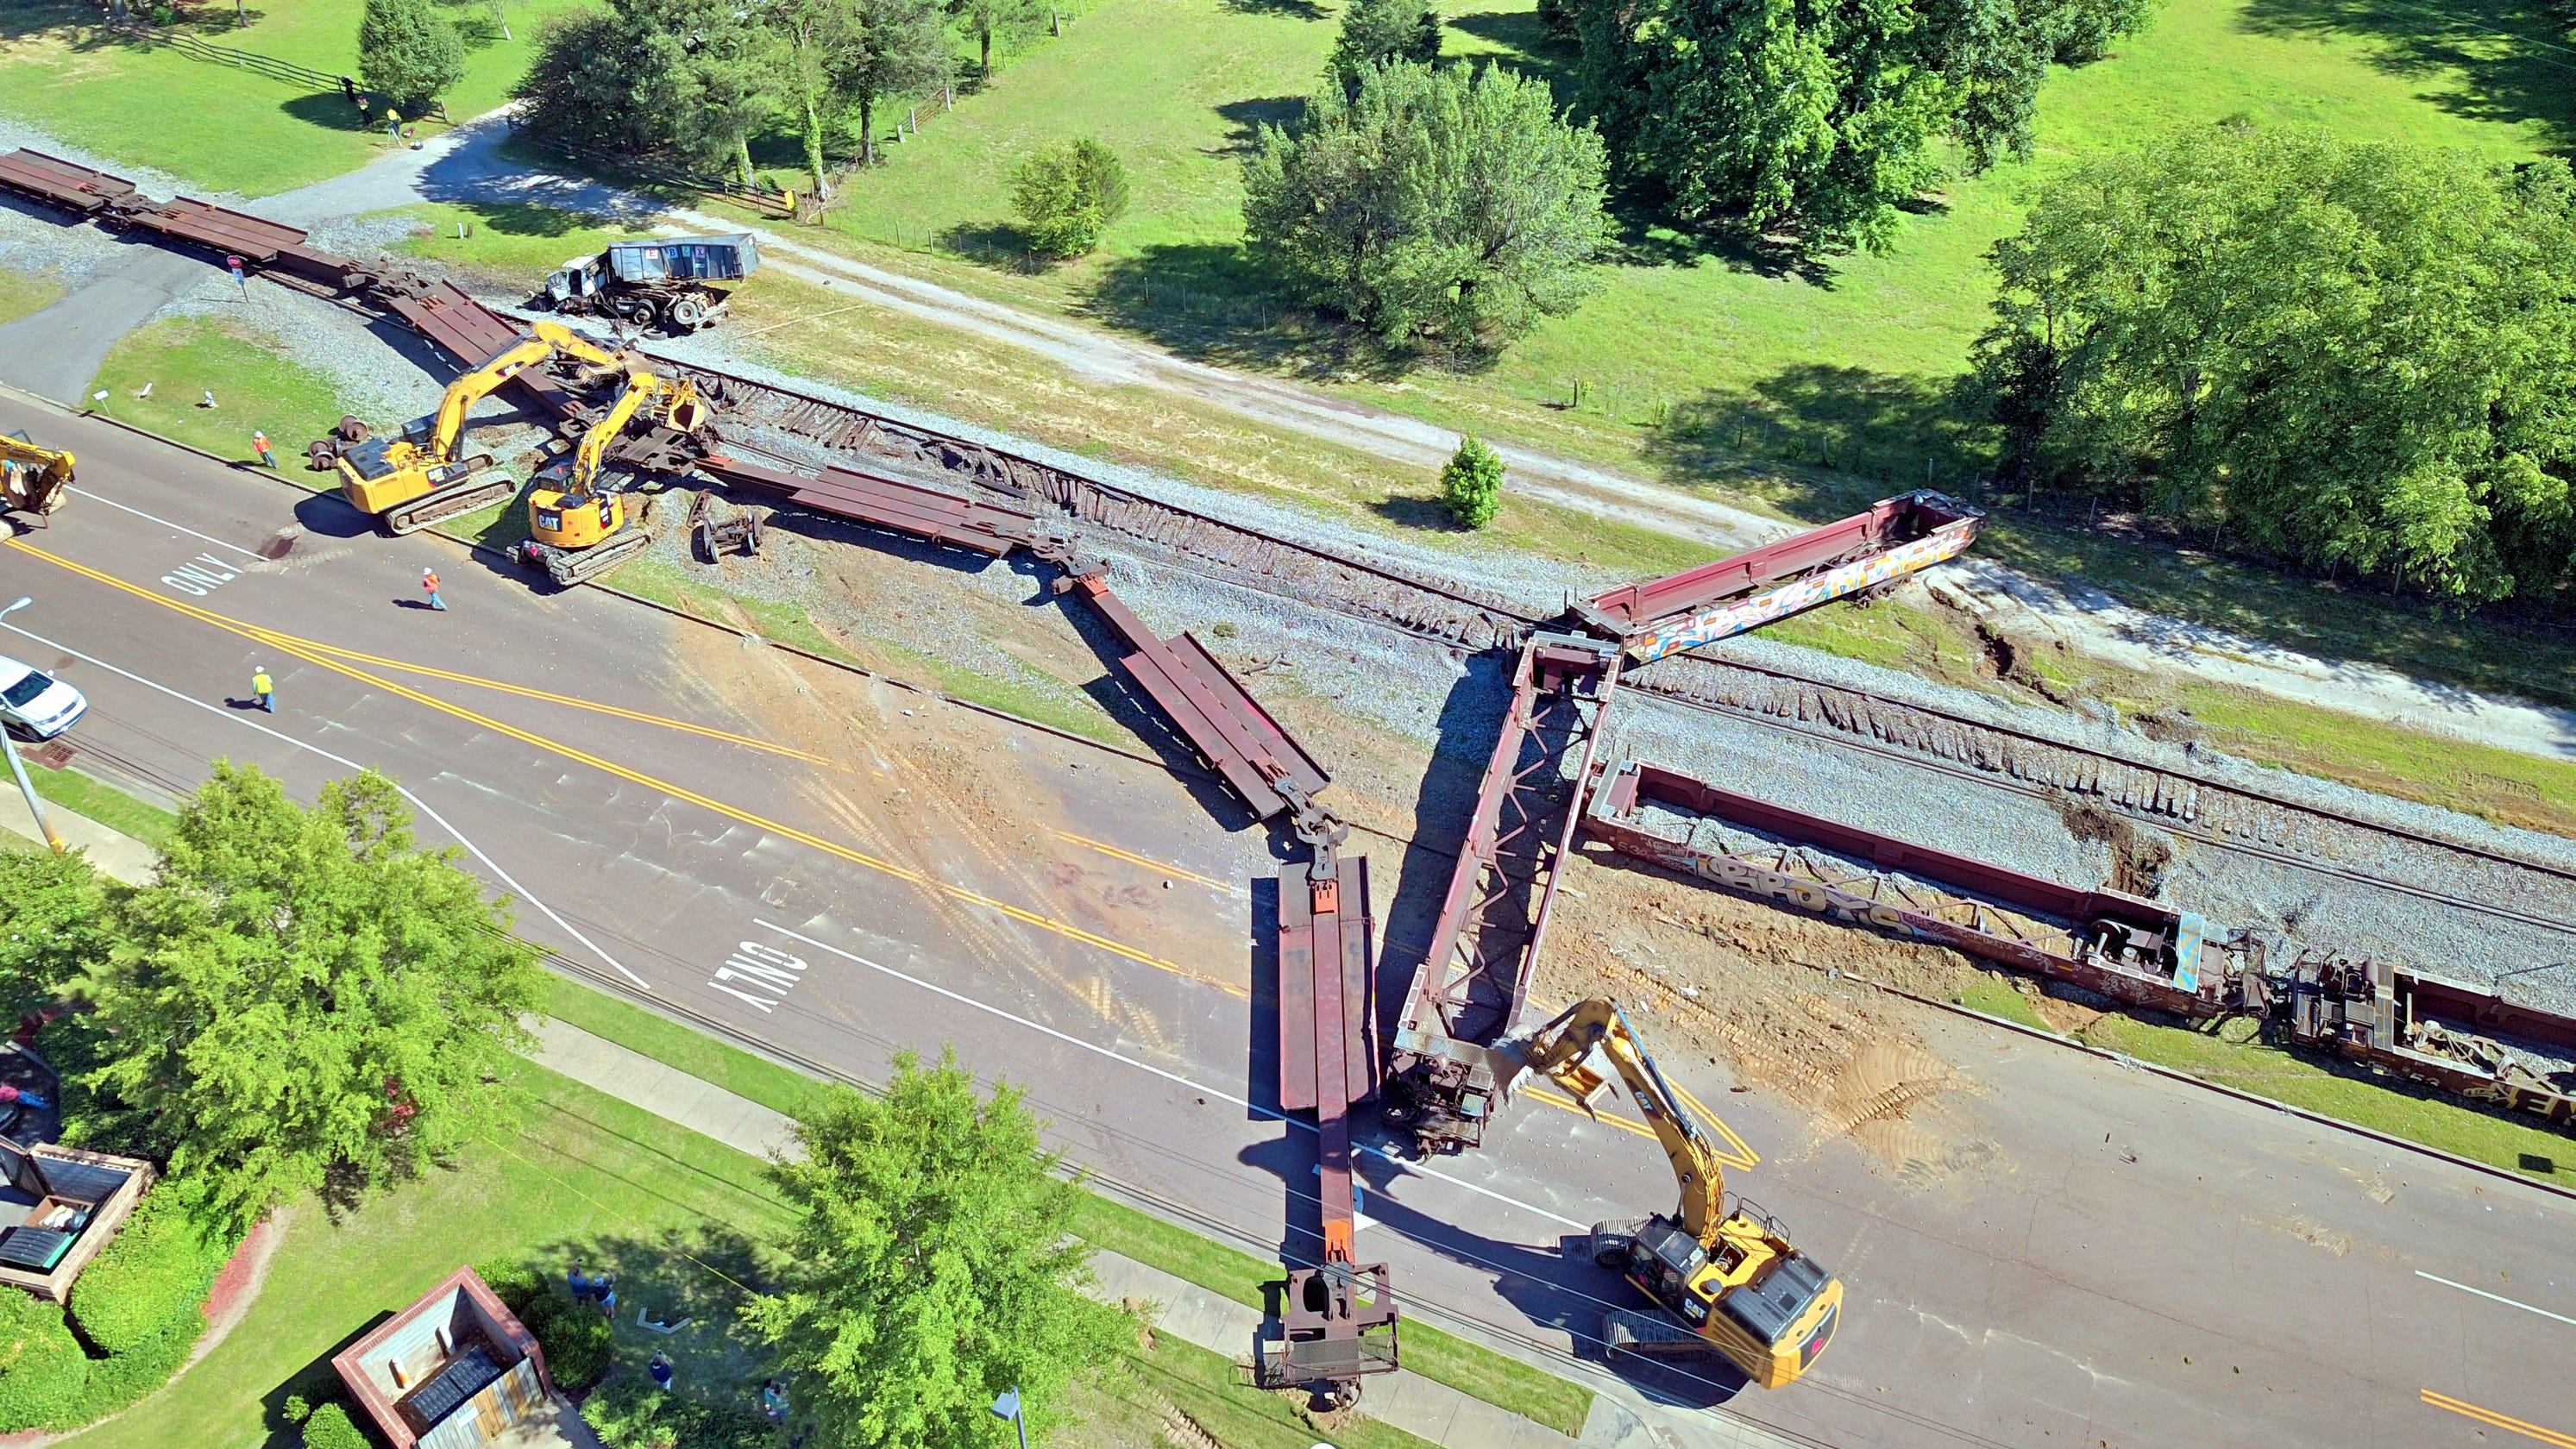 Train derailed in Germantown at Poplar Pike and Forrest Hill